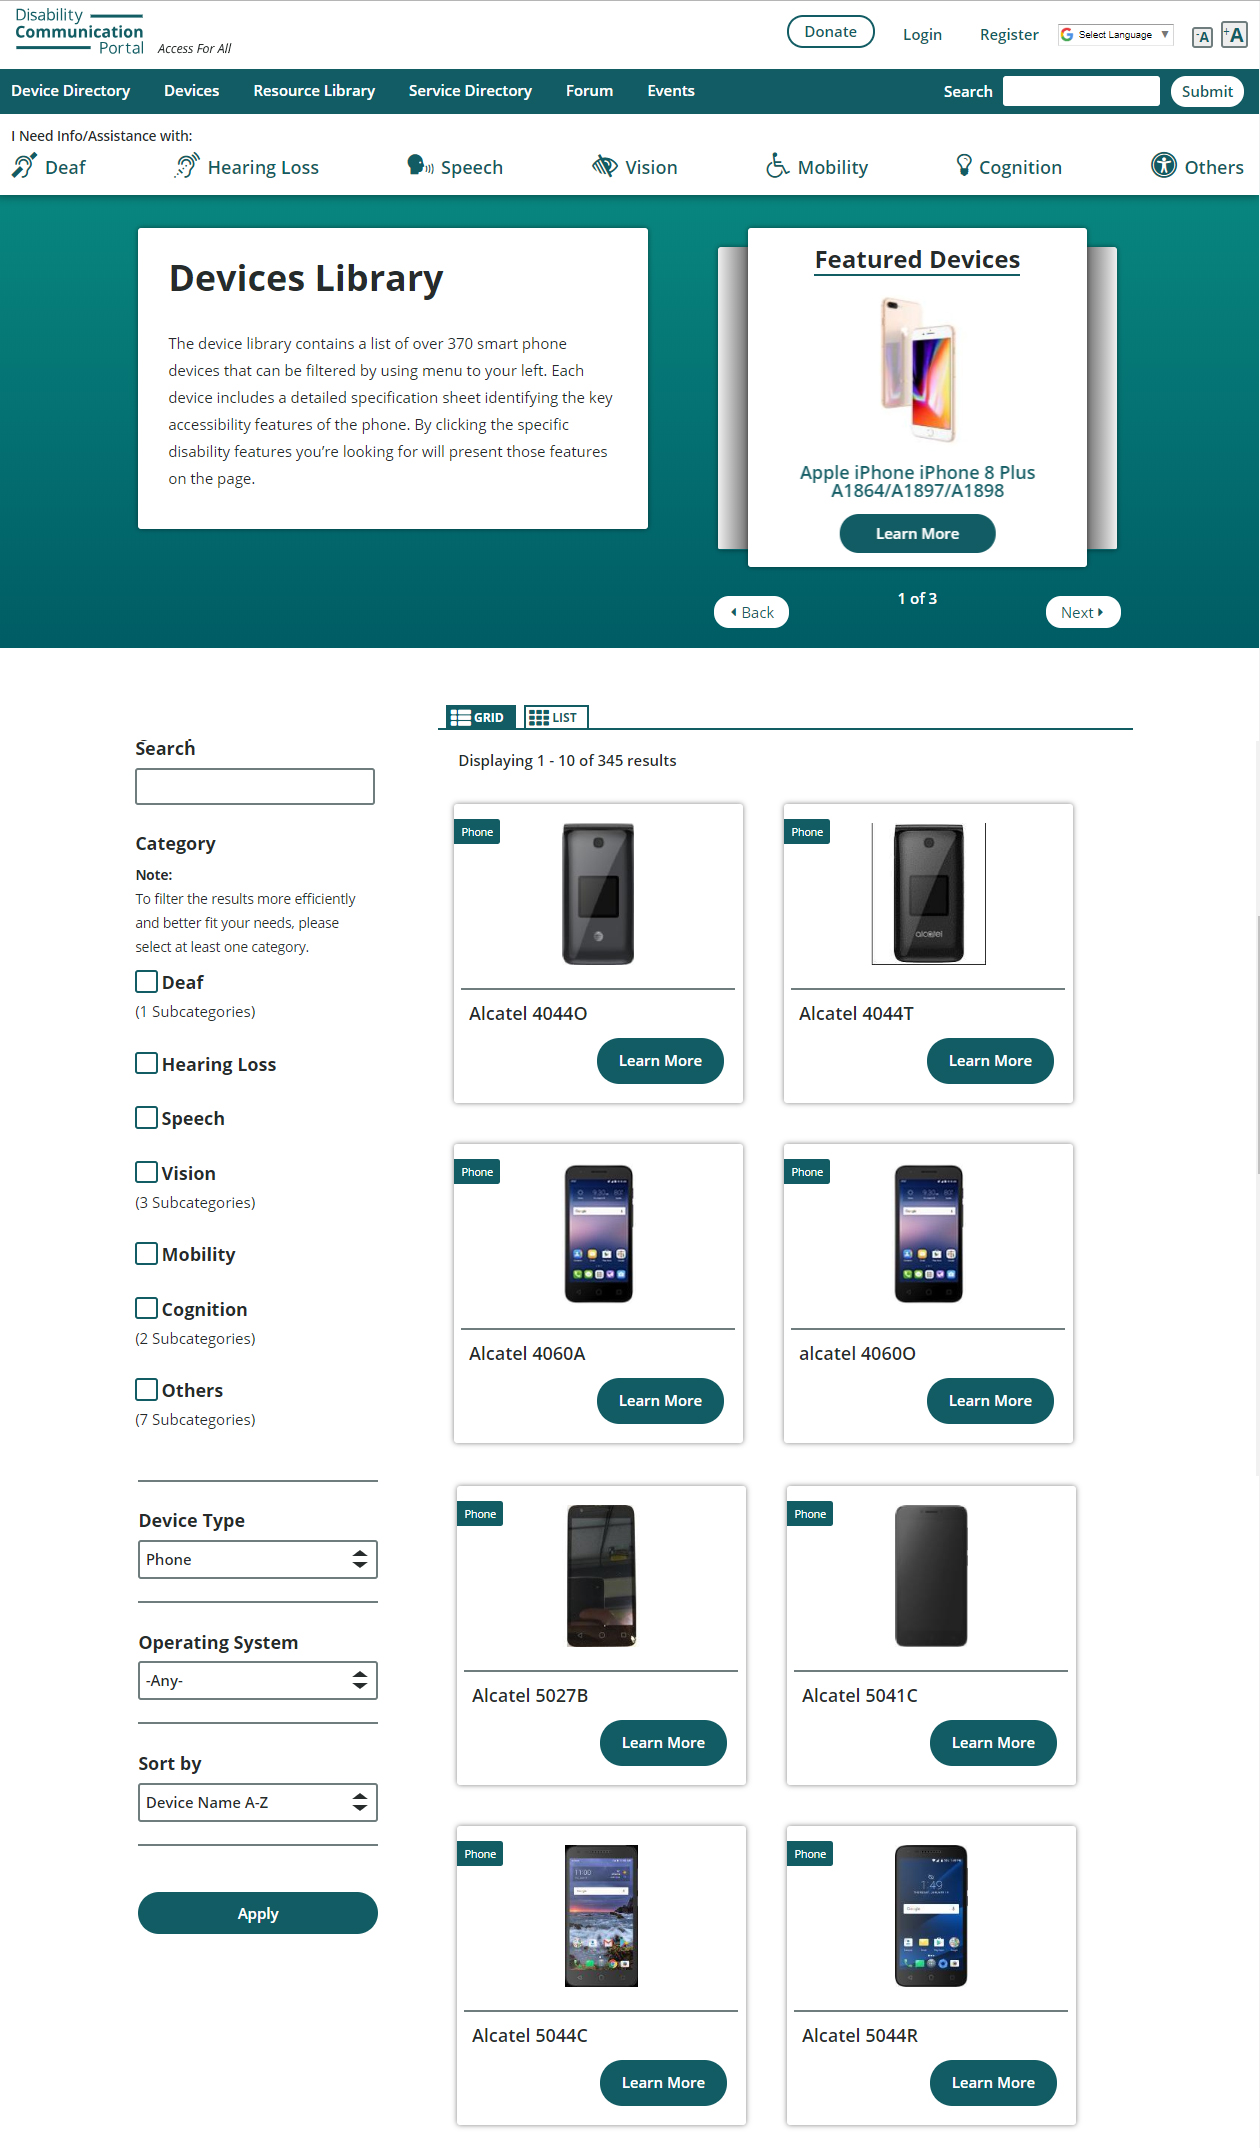 Example 1: The device library landing page - It is accessible from the Services Navigation bar on the top. The disability categories are available as filters on the left.